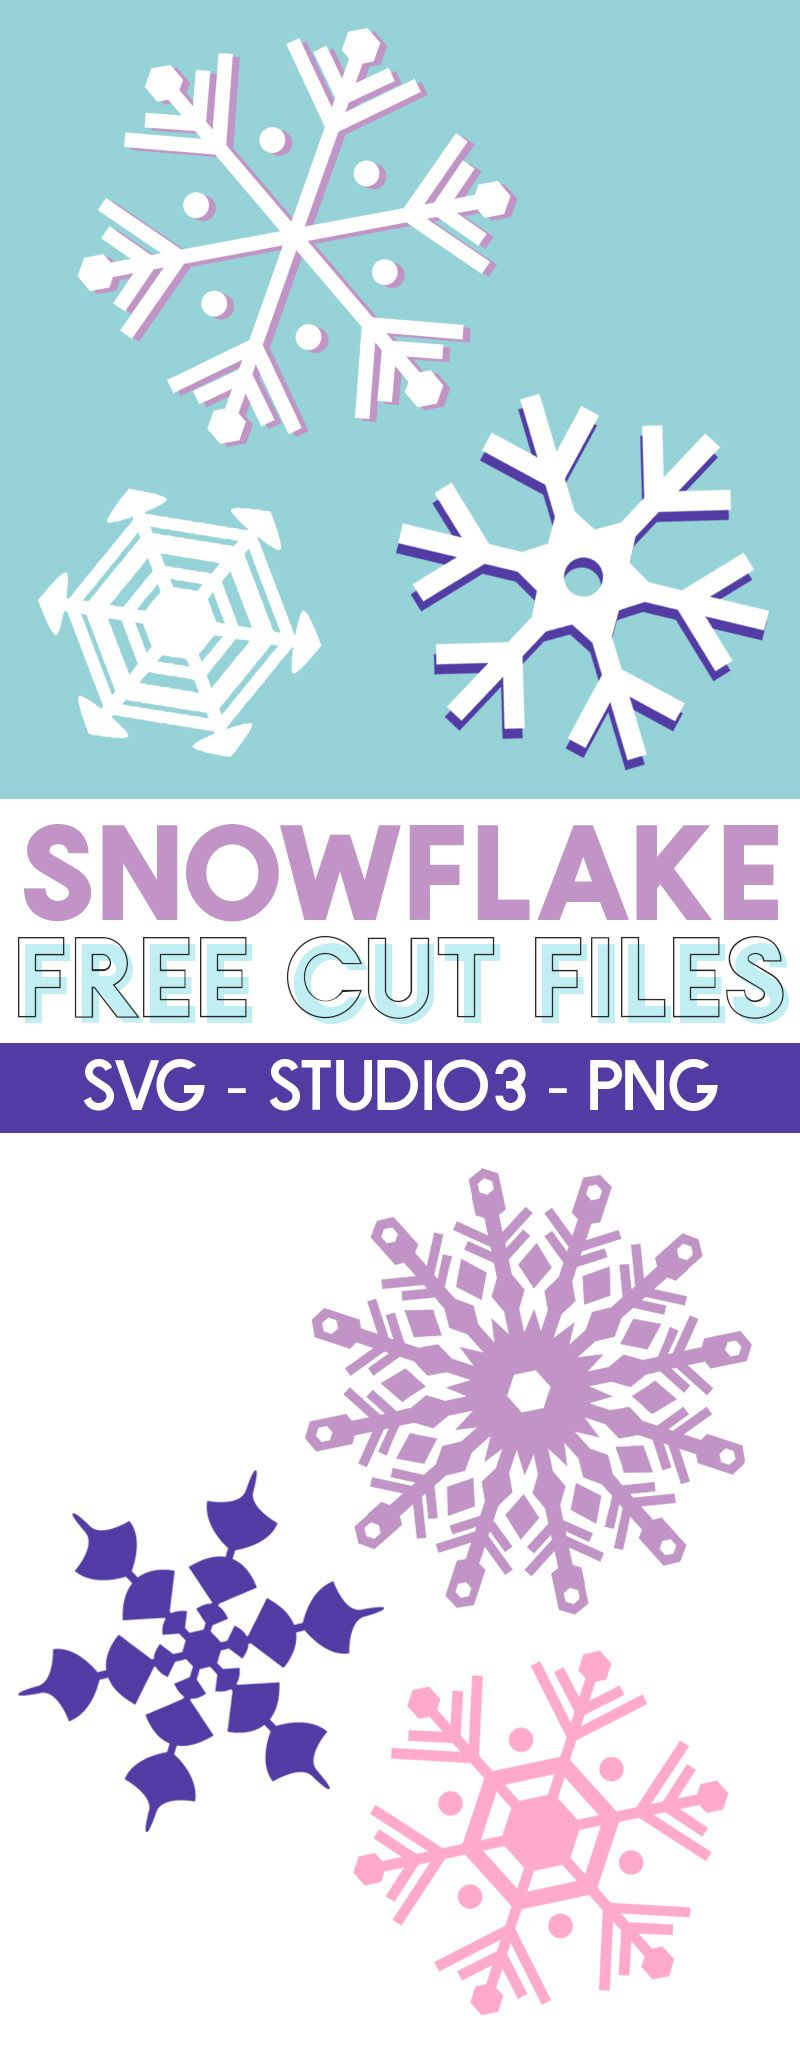 How to Work with Etched Glass Vinyl & Free Snowflake SVG